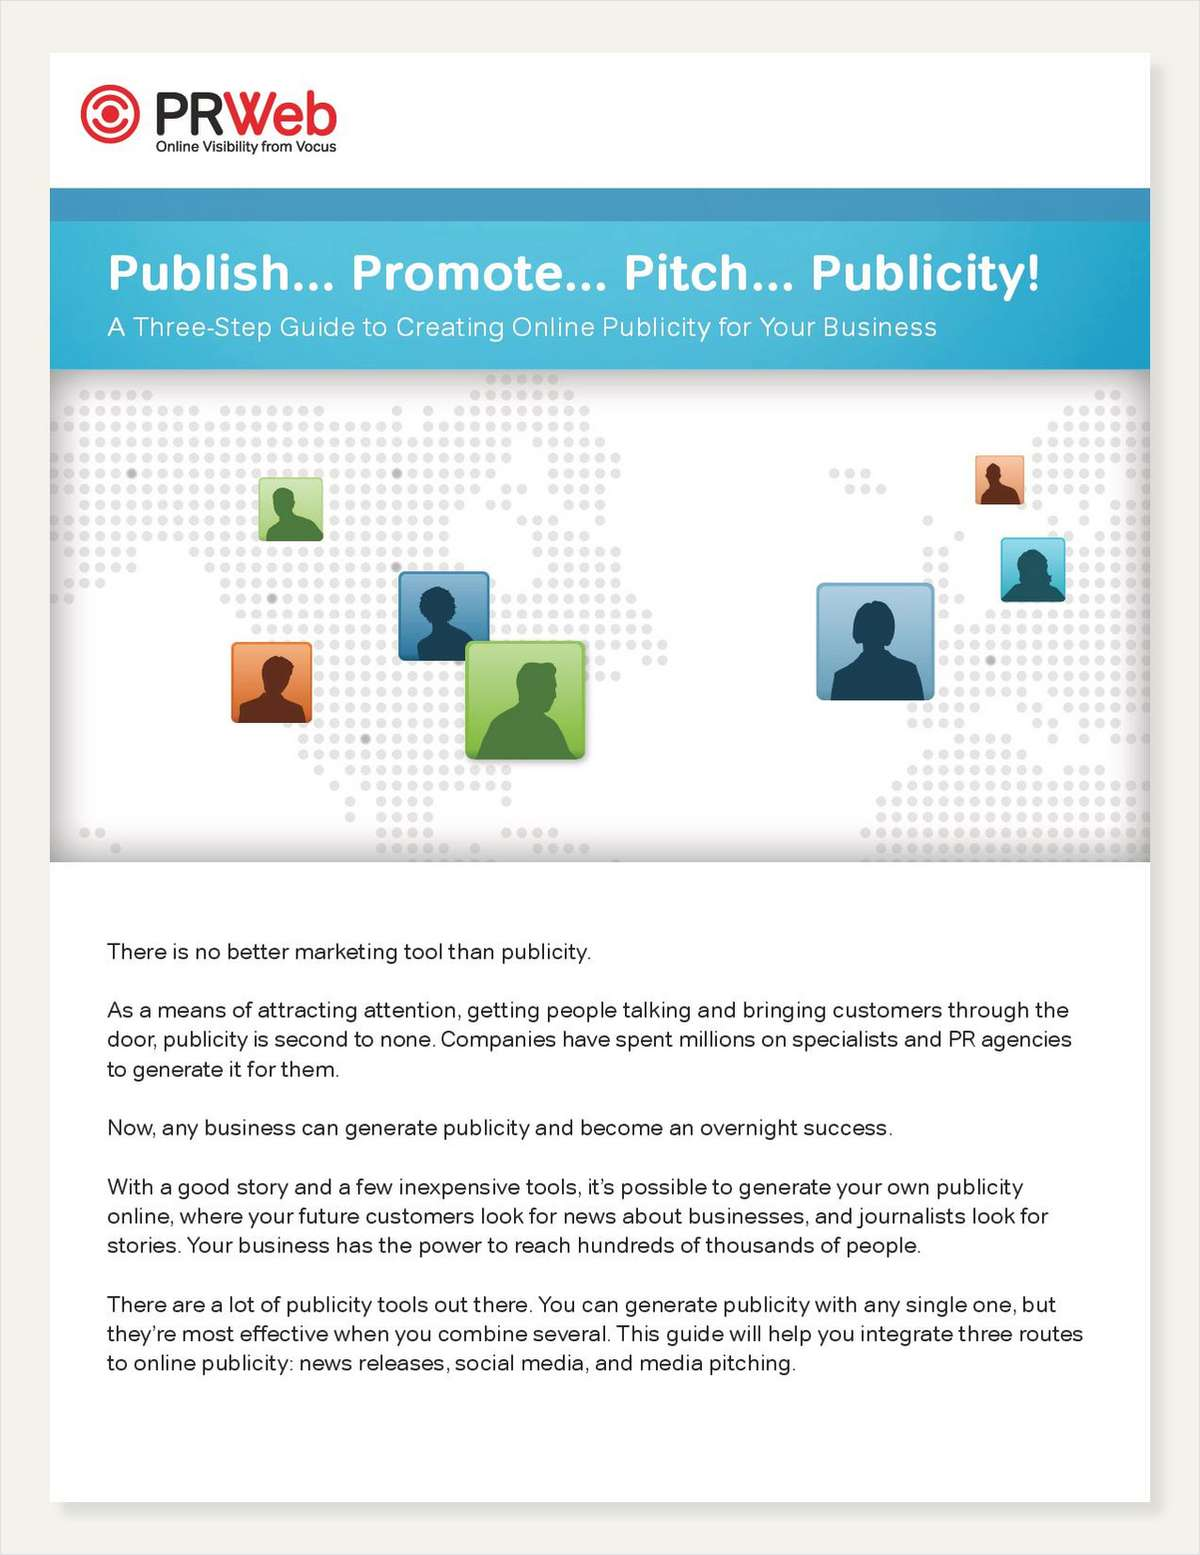 Publish... Promote... Pitch... Publicity! A Three-Step Guide to Creating Online Publicity for Your Business